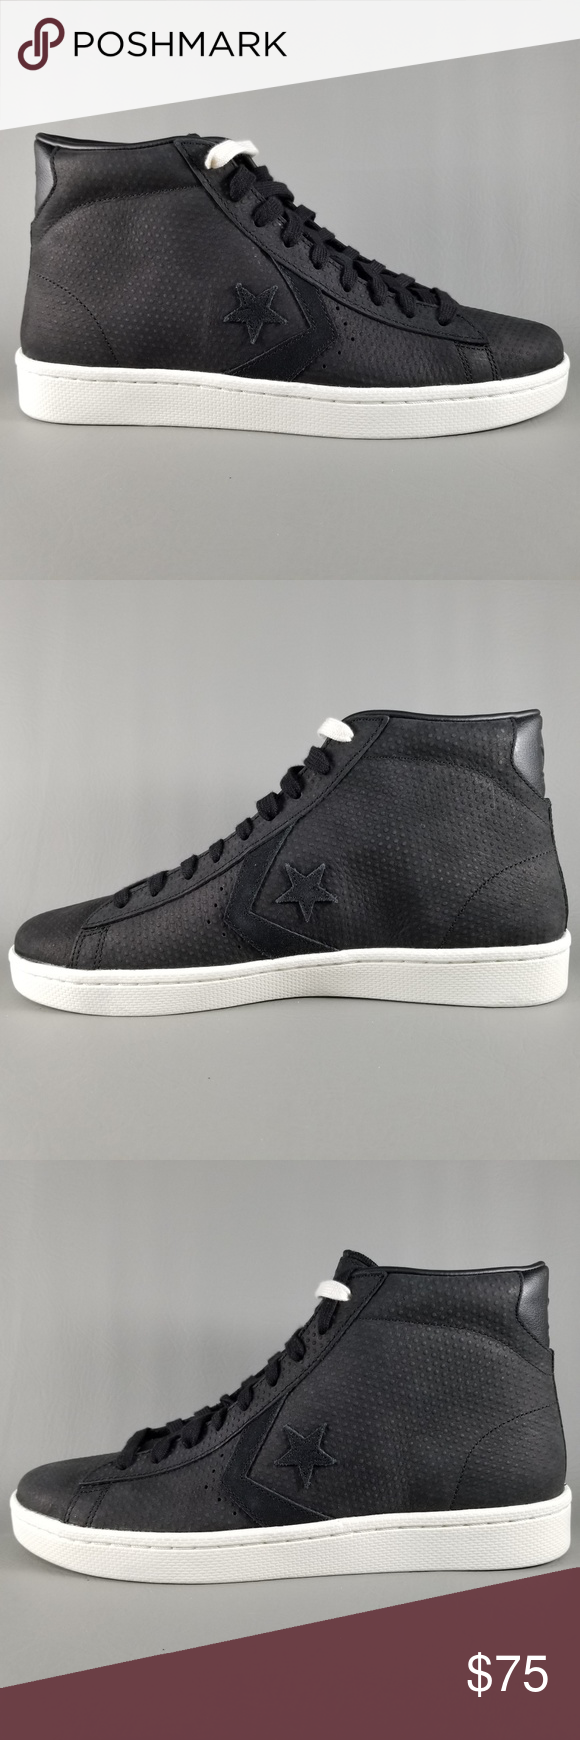 f8b5a00d87d2 Converse One Star Leather Ox Men Shoes Black White Converse One Star  Leather Ox Men s Shoes Style  155647C Color  Black   Black Egret   Does not  include ...